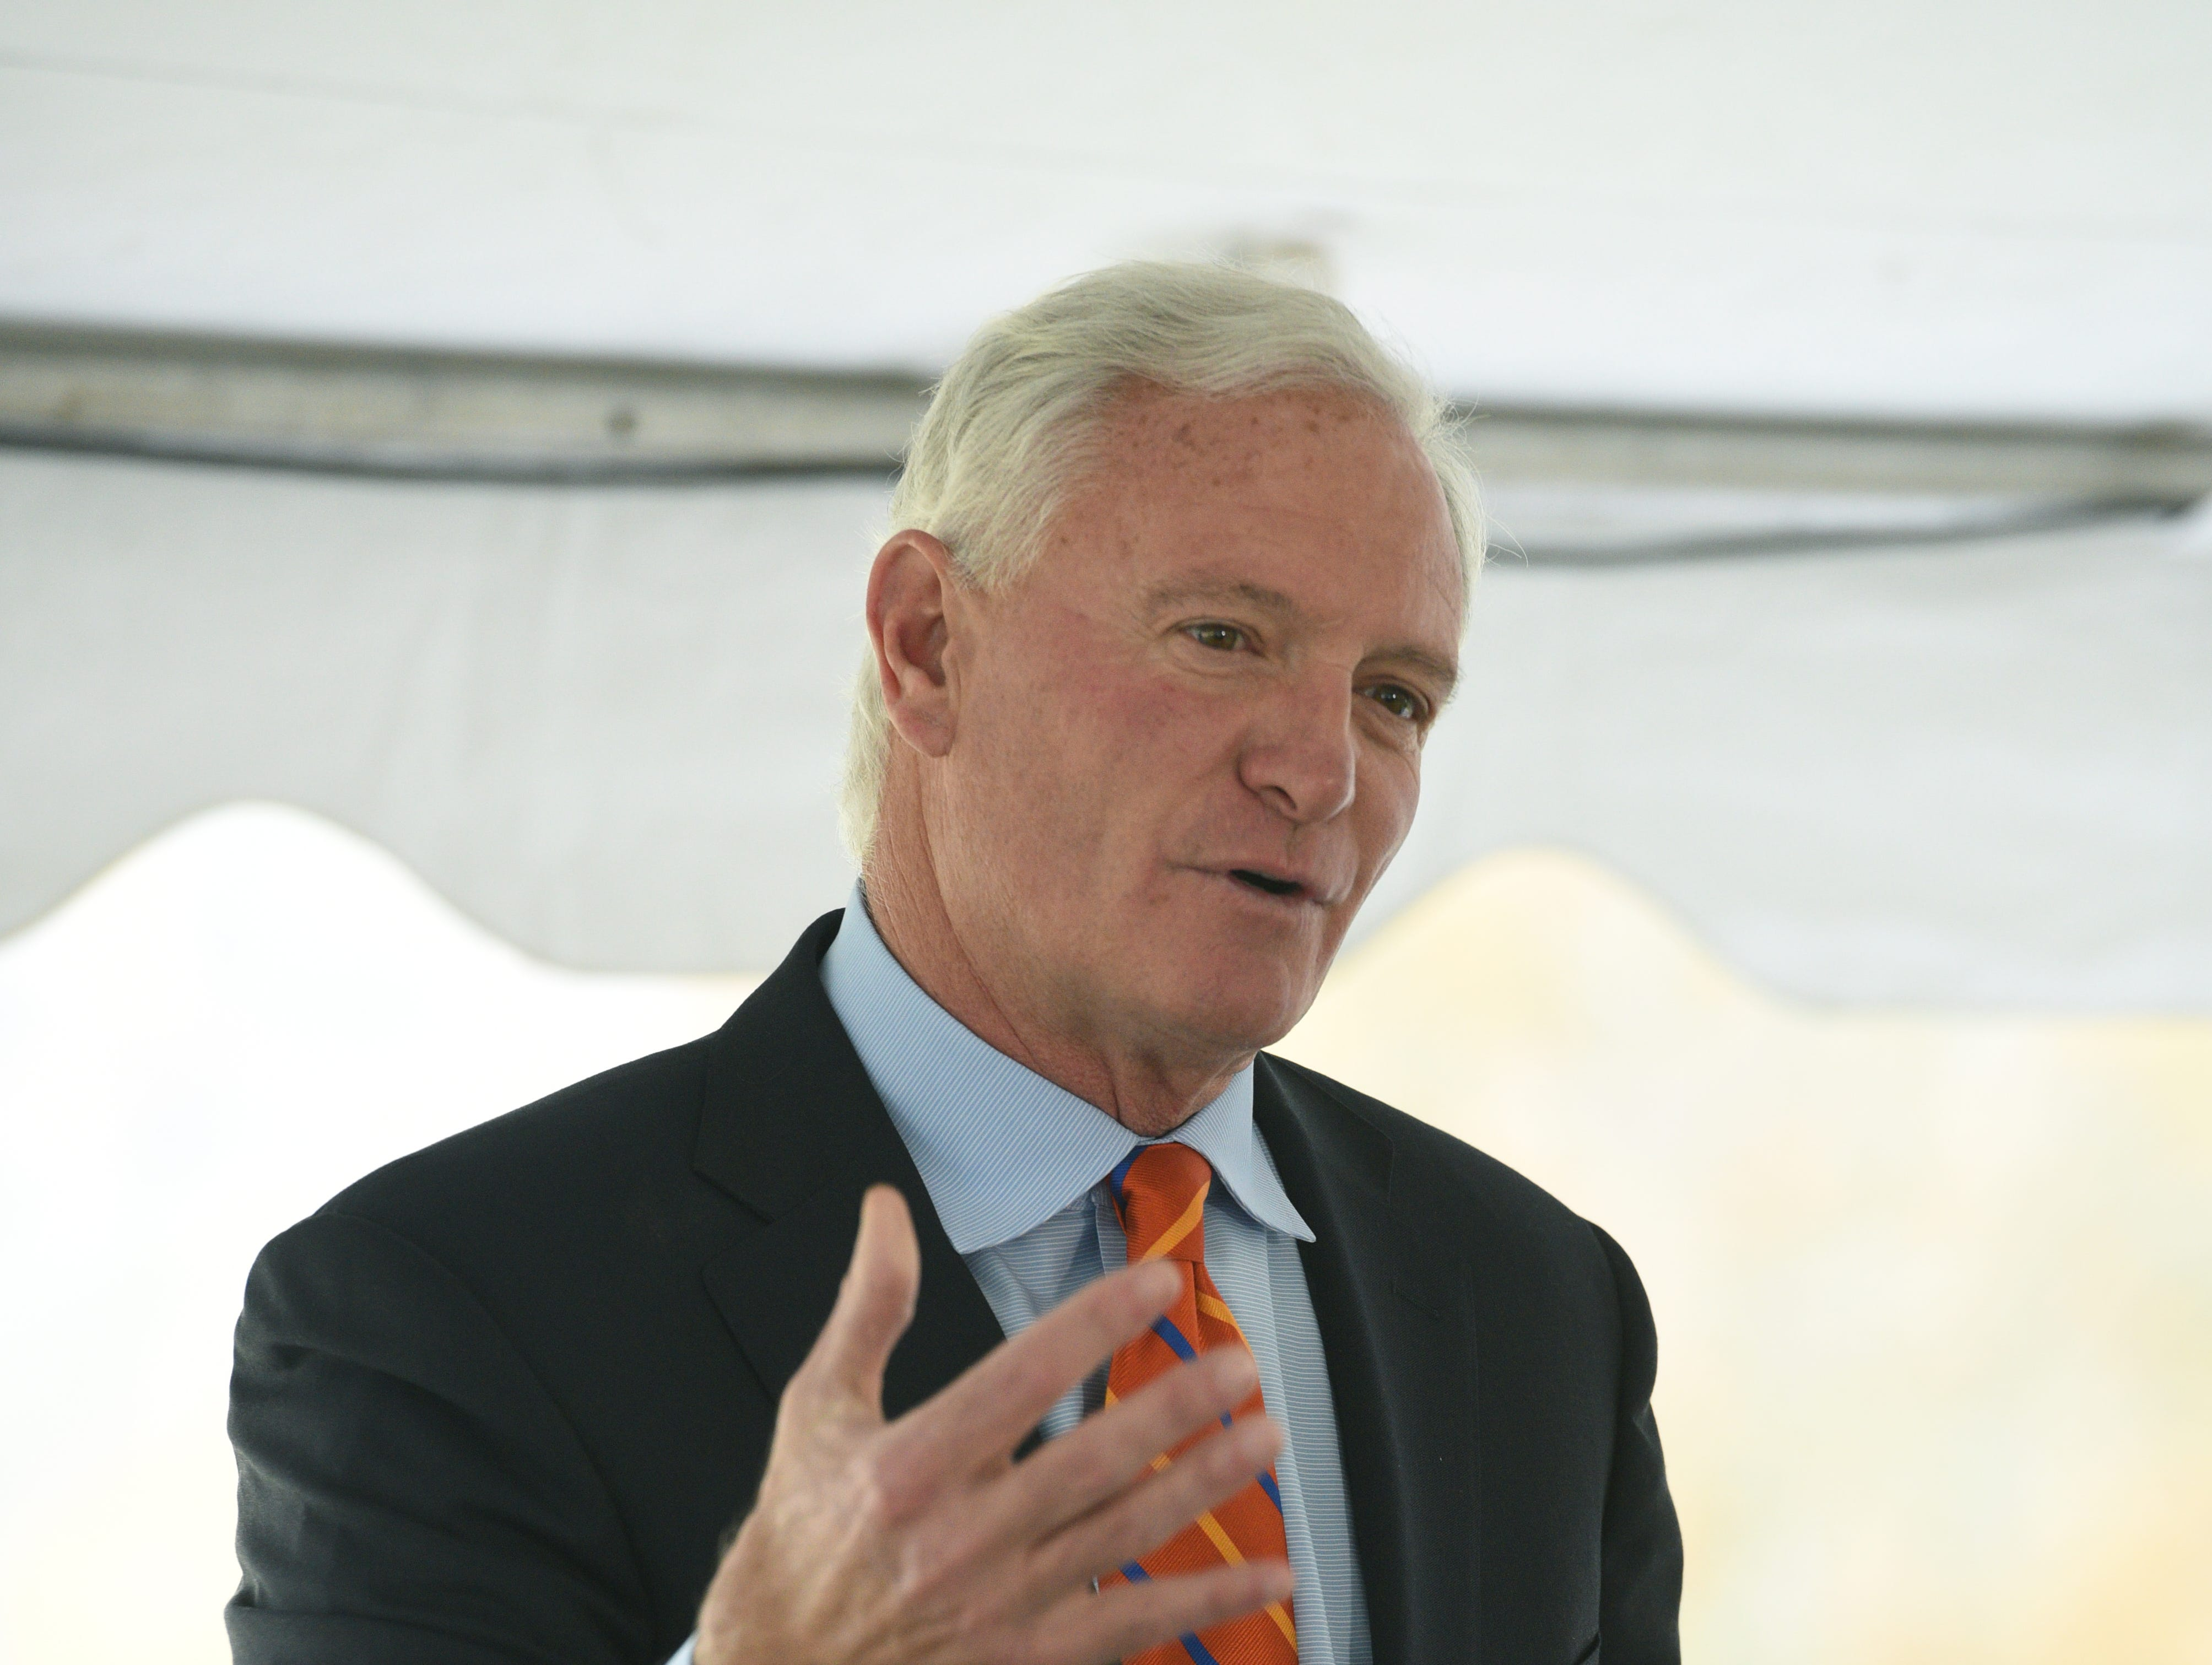 Jimmy Haslam announced a $15 million gift from his family and Pilot Flying J to begin a $25 million dollar fundraising campaign for Lakeshore Park Phase 1 Thursday, Nov. 5, 2015 on the property.